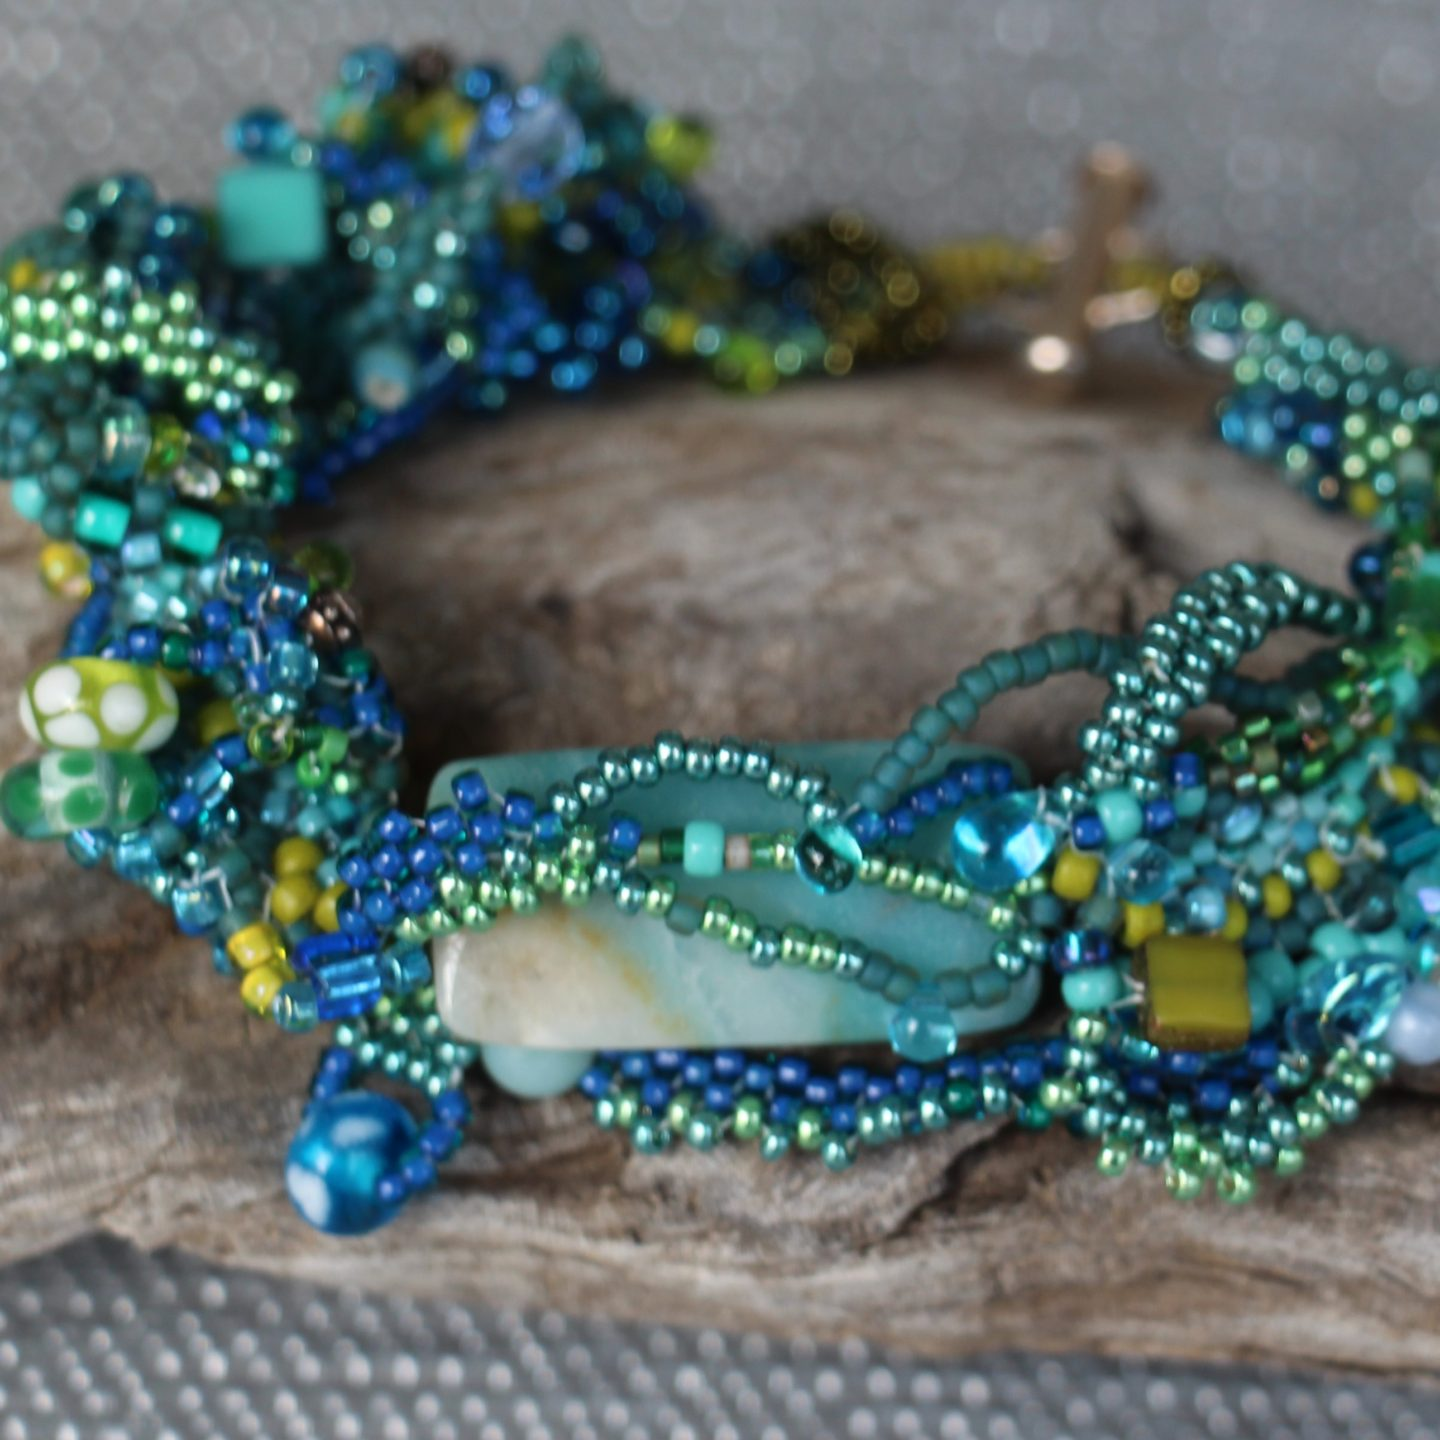 Bead Mixes: A recipe in creativity!